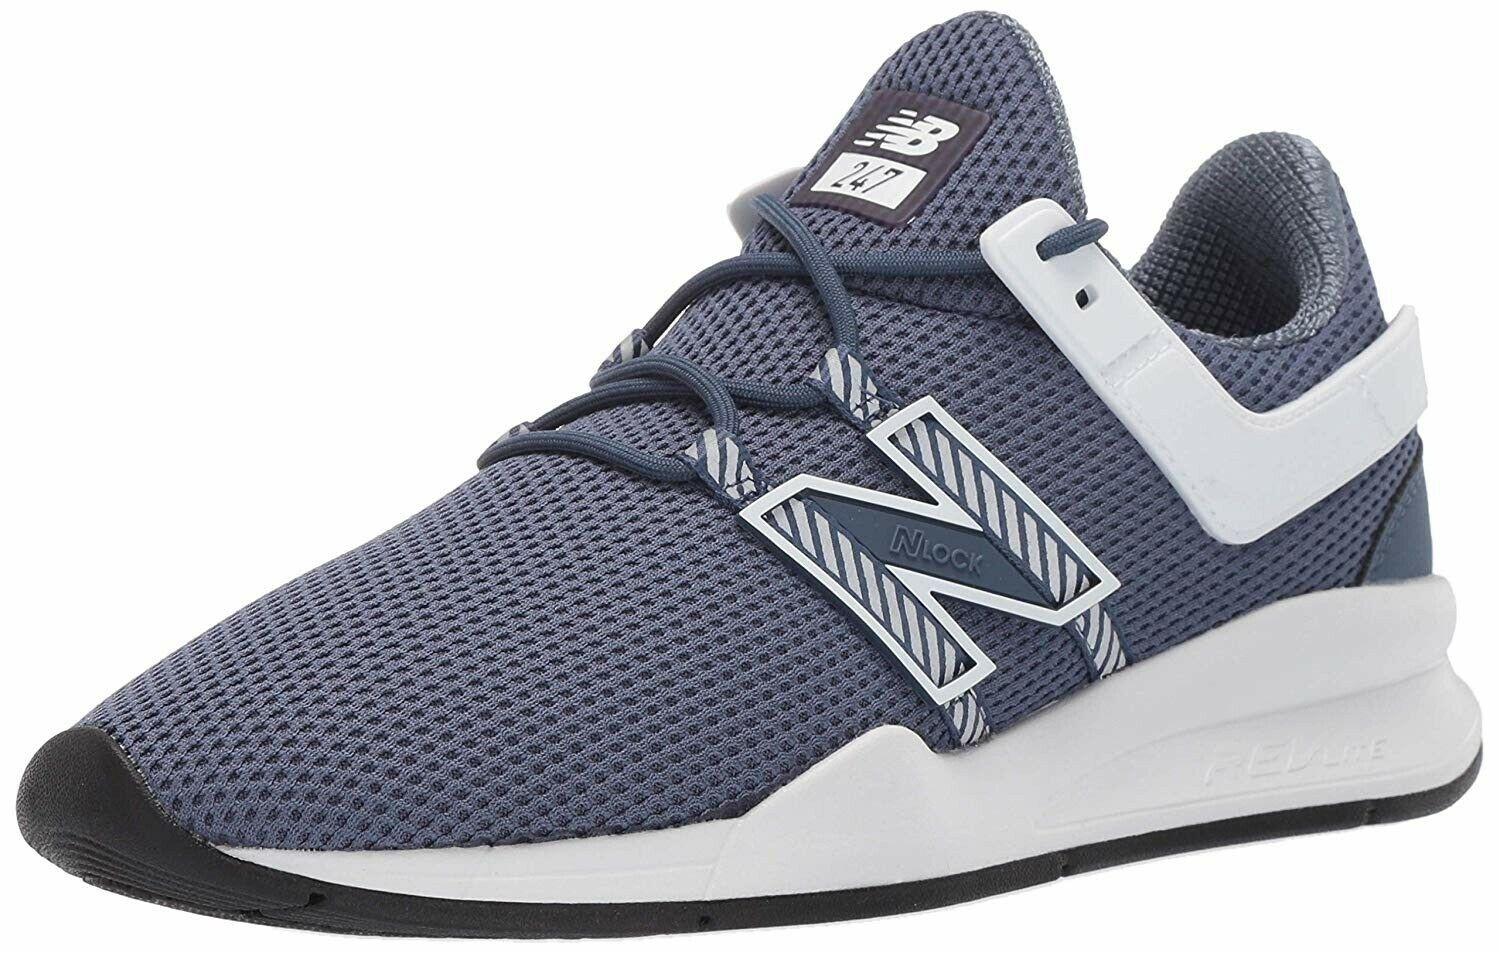 New Balance 247v2 Deconstructed Athletic Sneakers shoes bluee MS247DEC